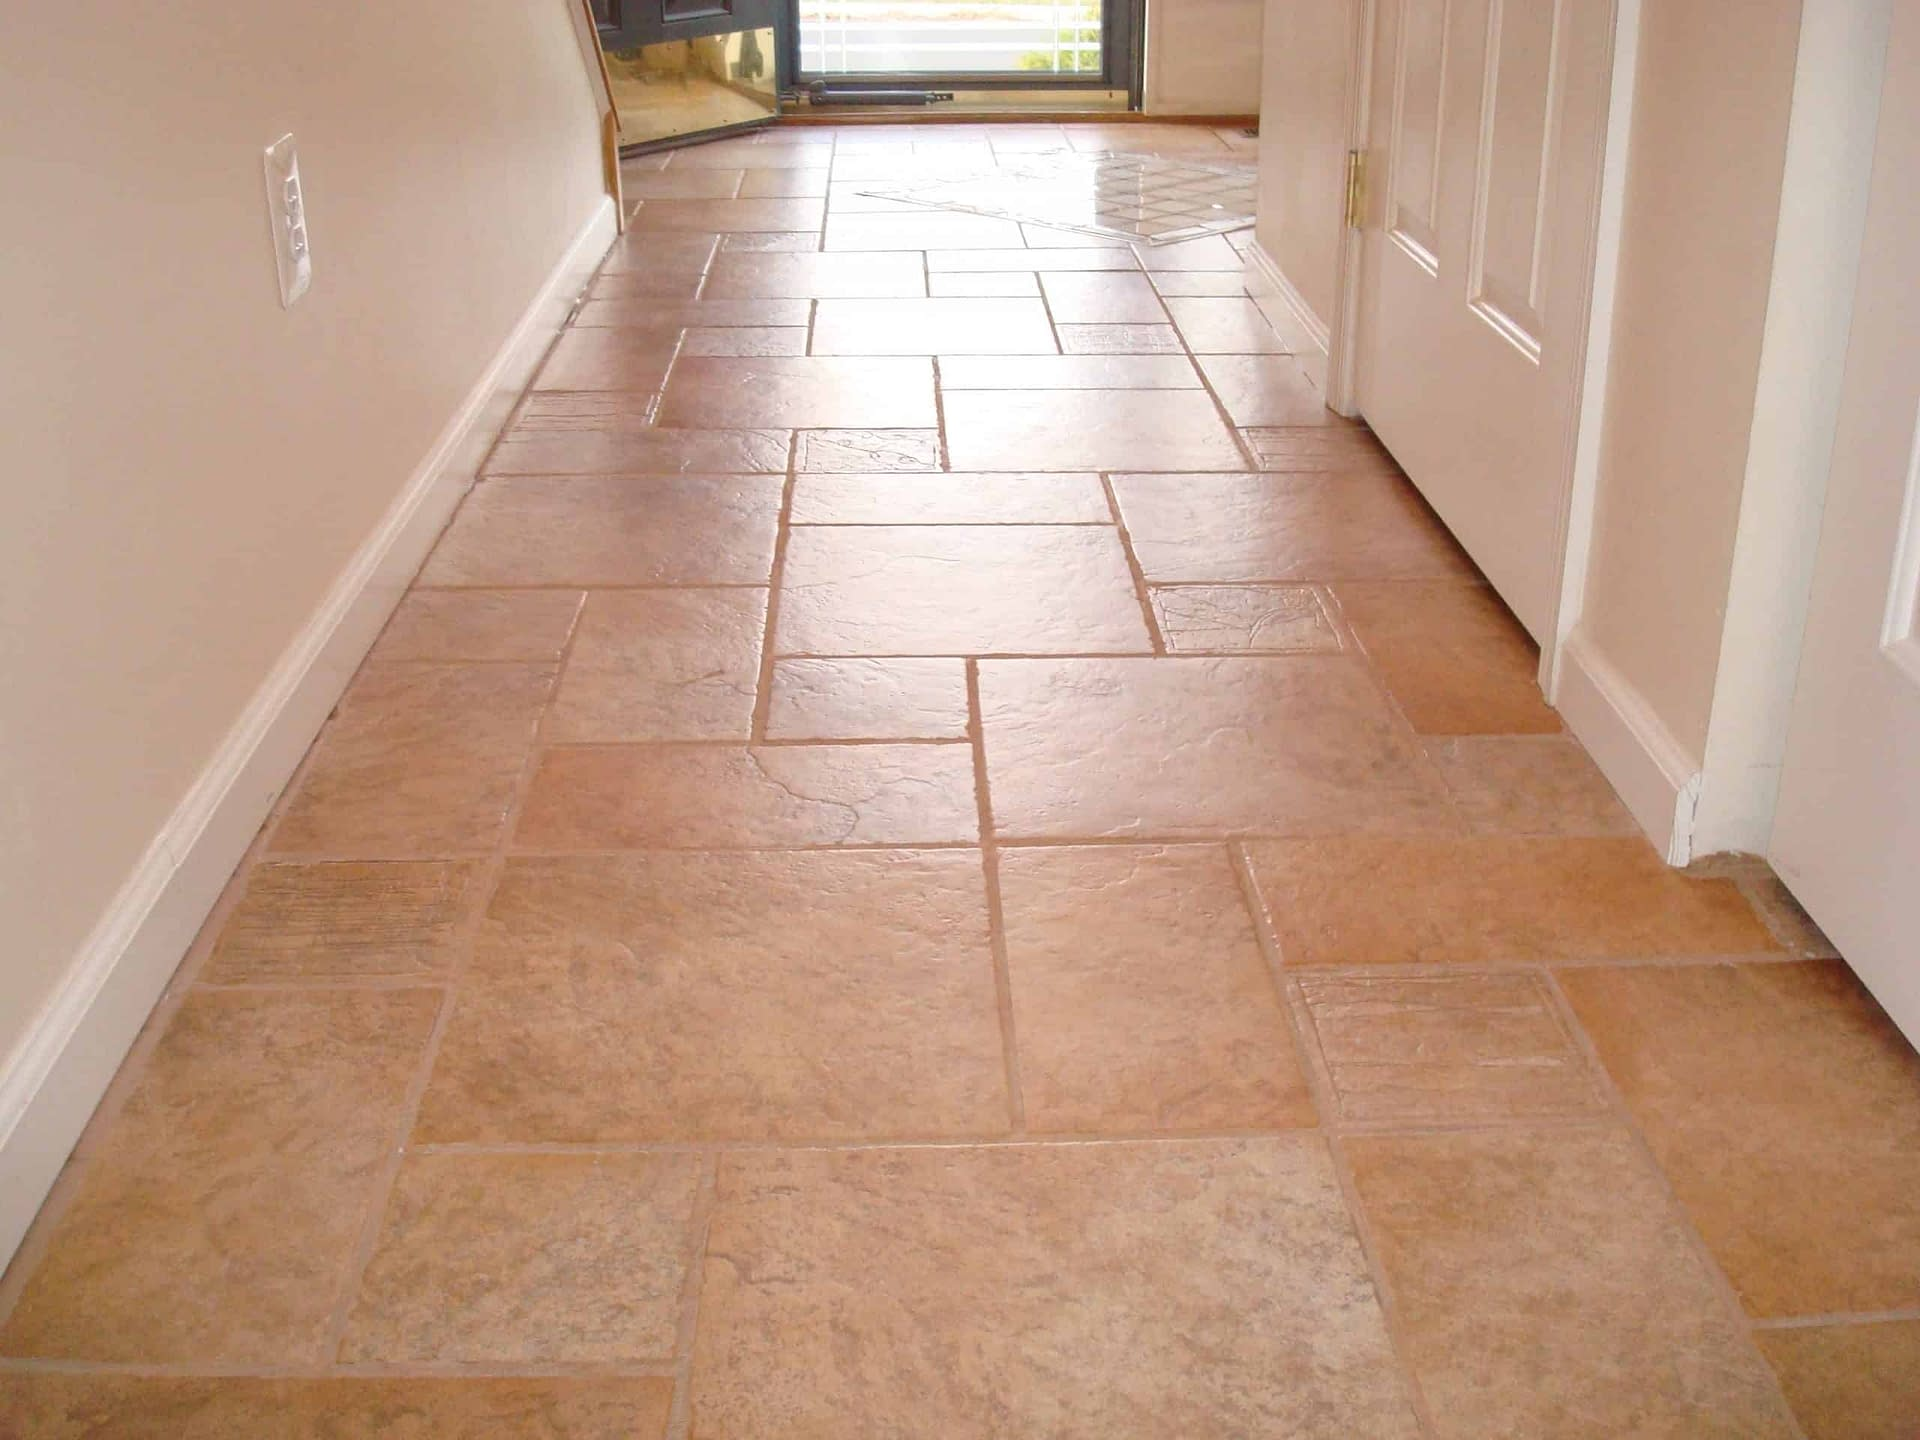 Chalfont, PA tile and grout cleaning